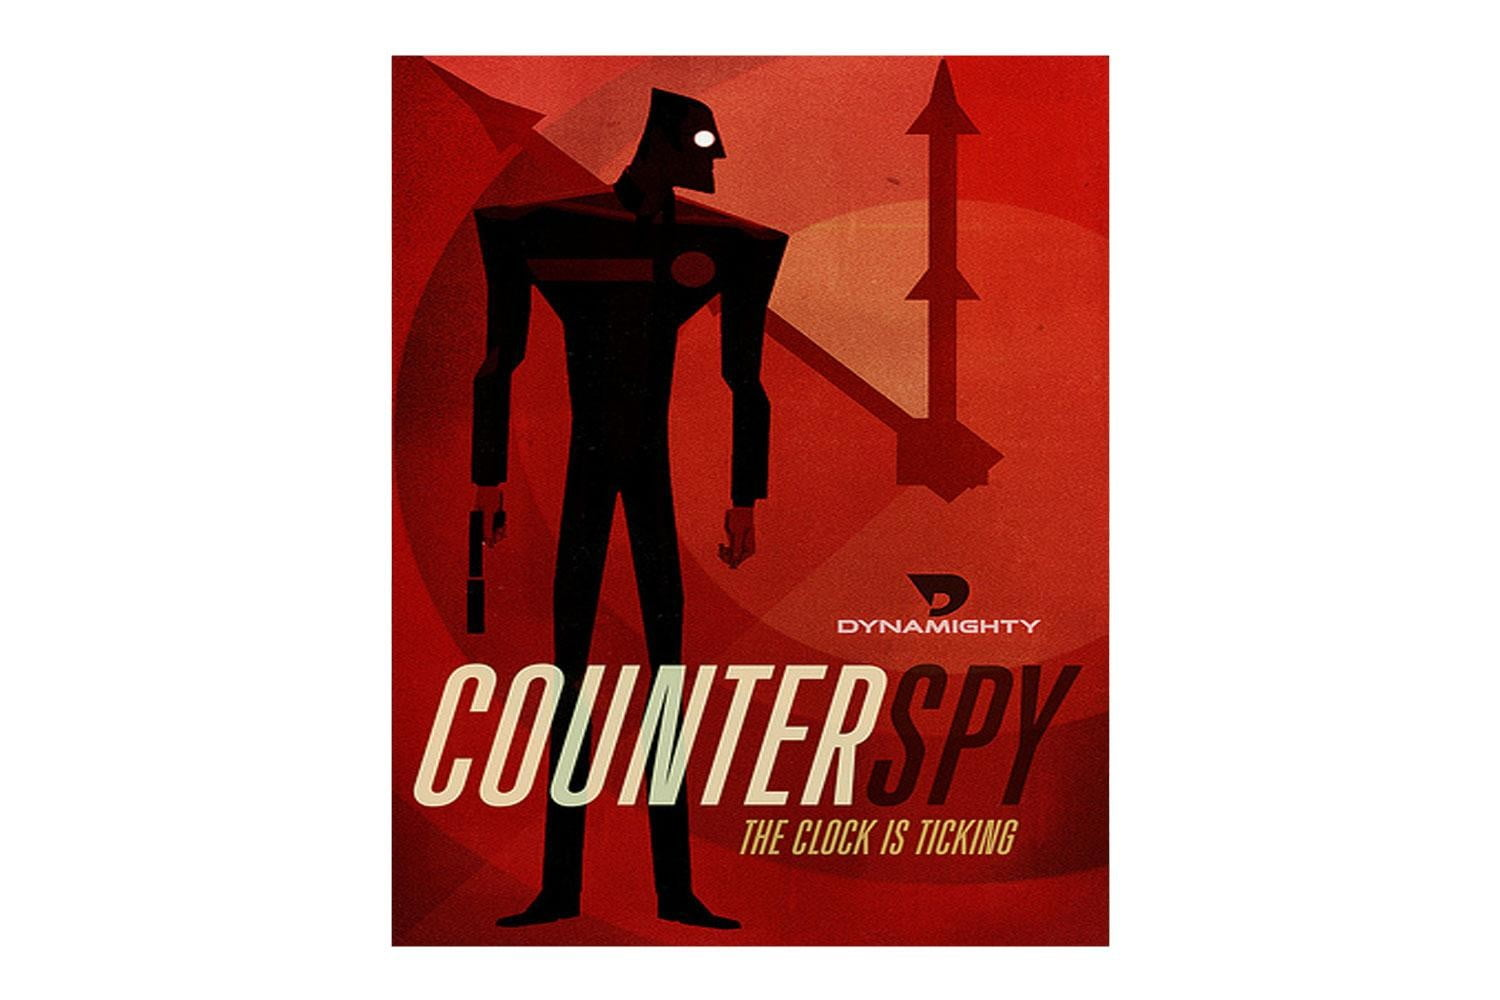 CounterSpy-cover-art